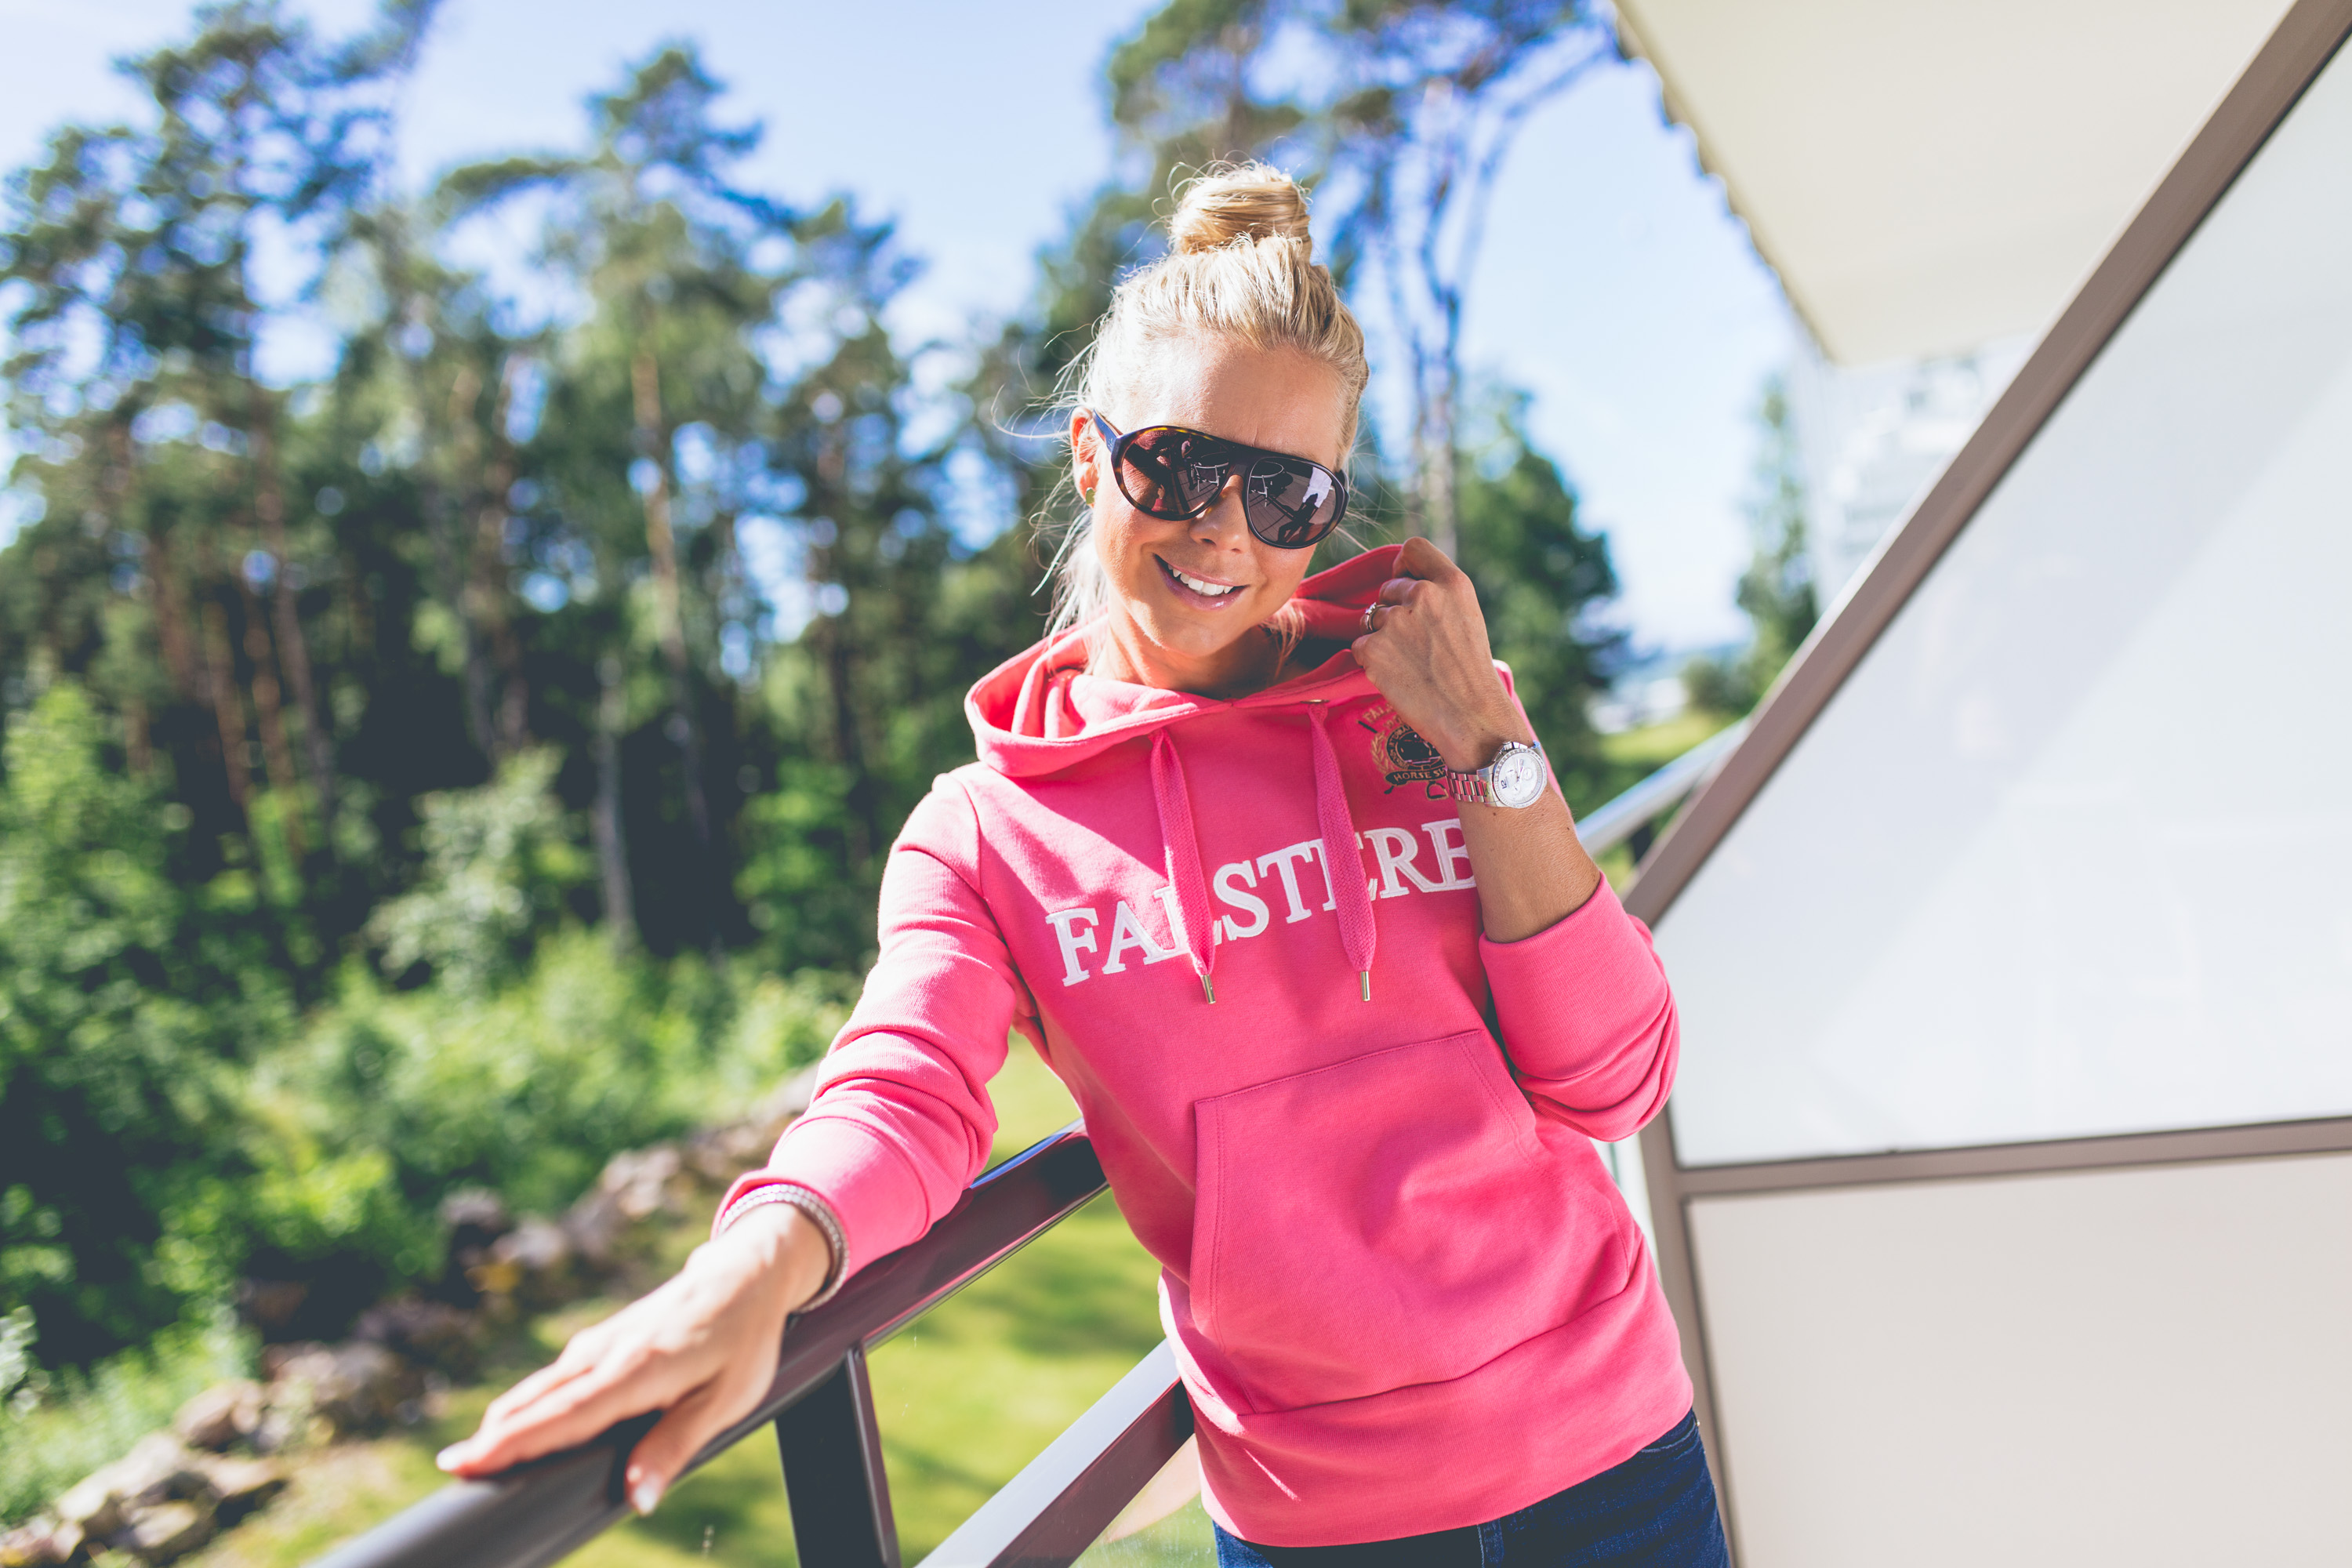 Andrea_Berlin_Hotel_Riviera_Strand_Båstad_Gina_Tricot_Falsterbo_Collection_2017_Hoodie-1383